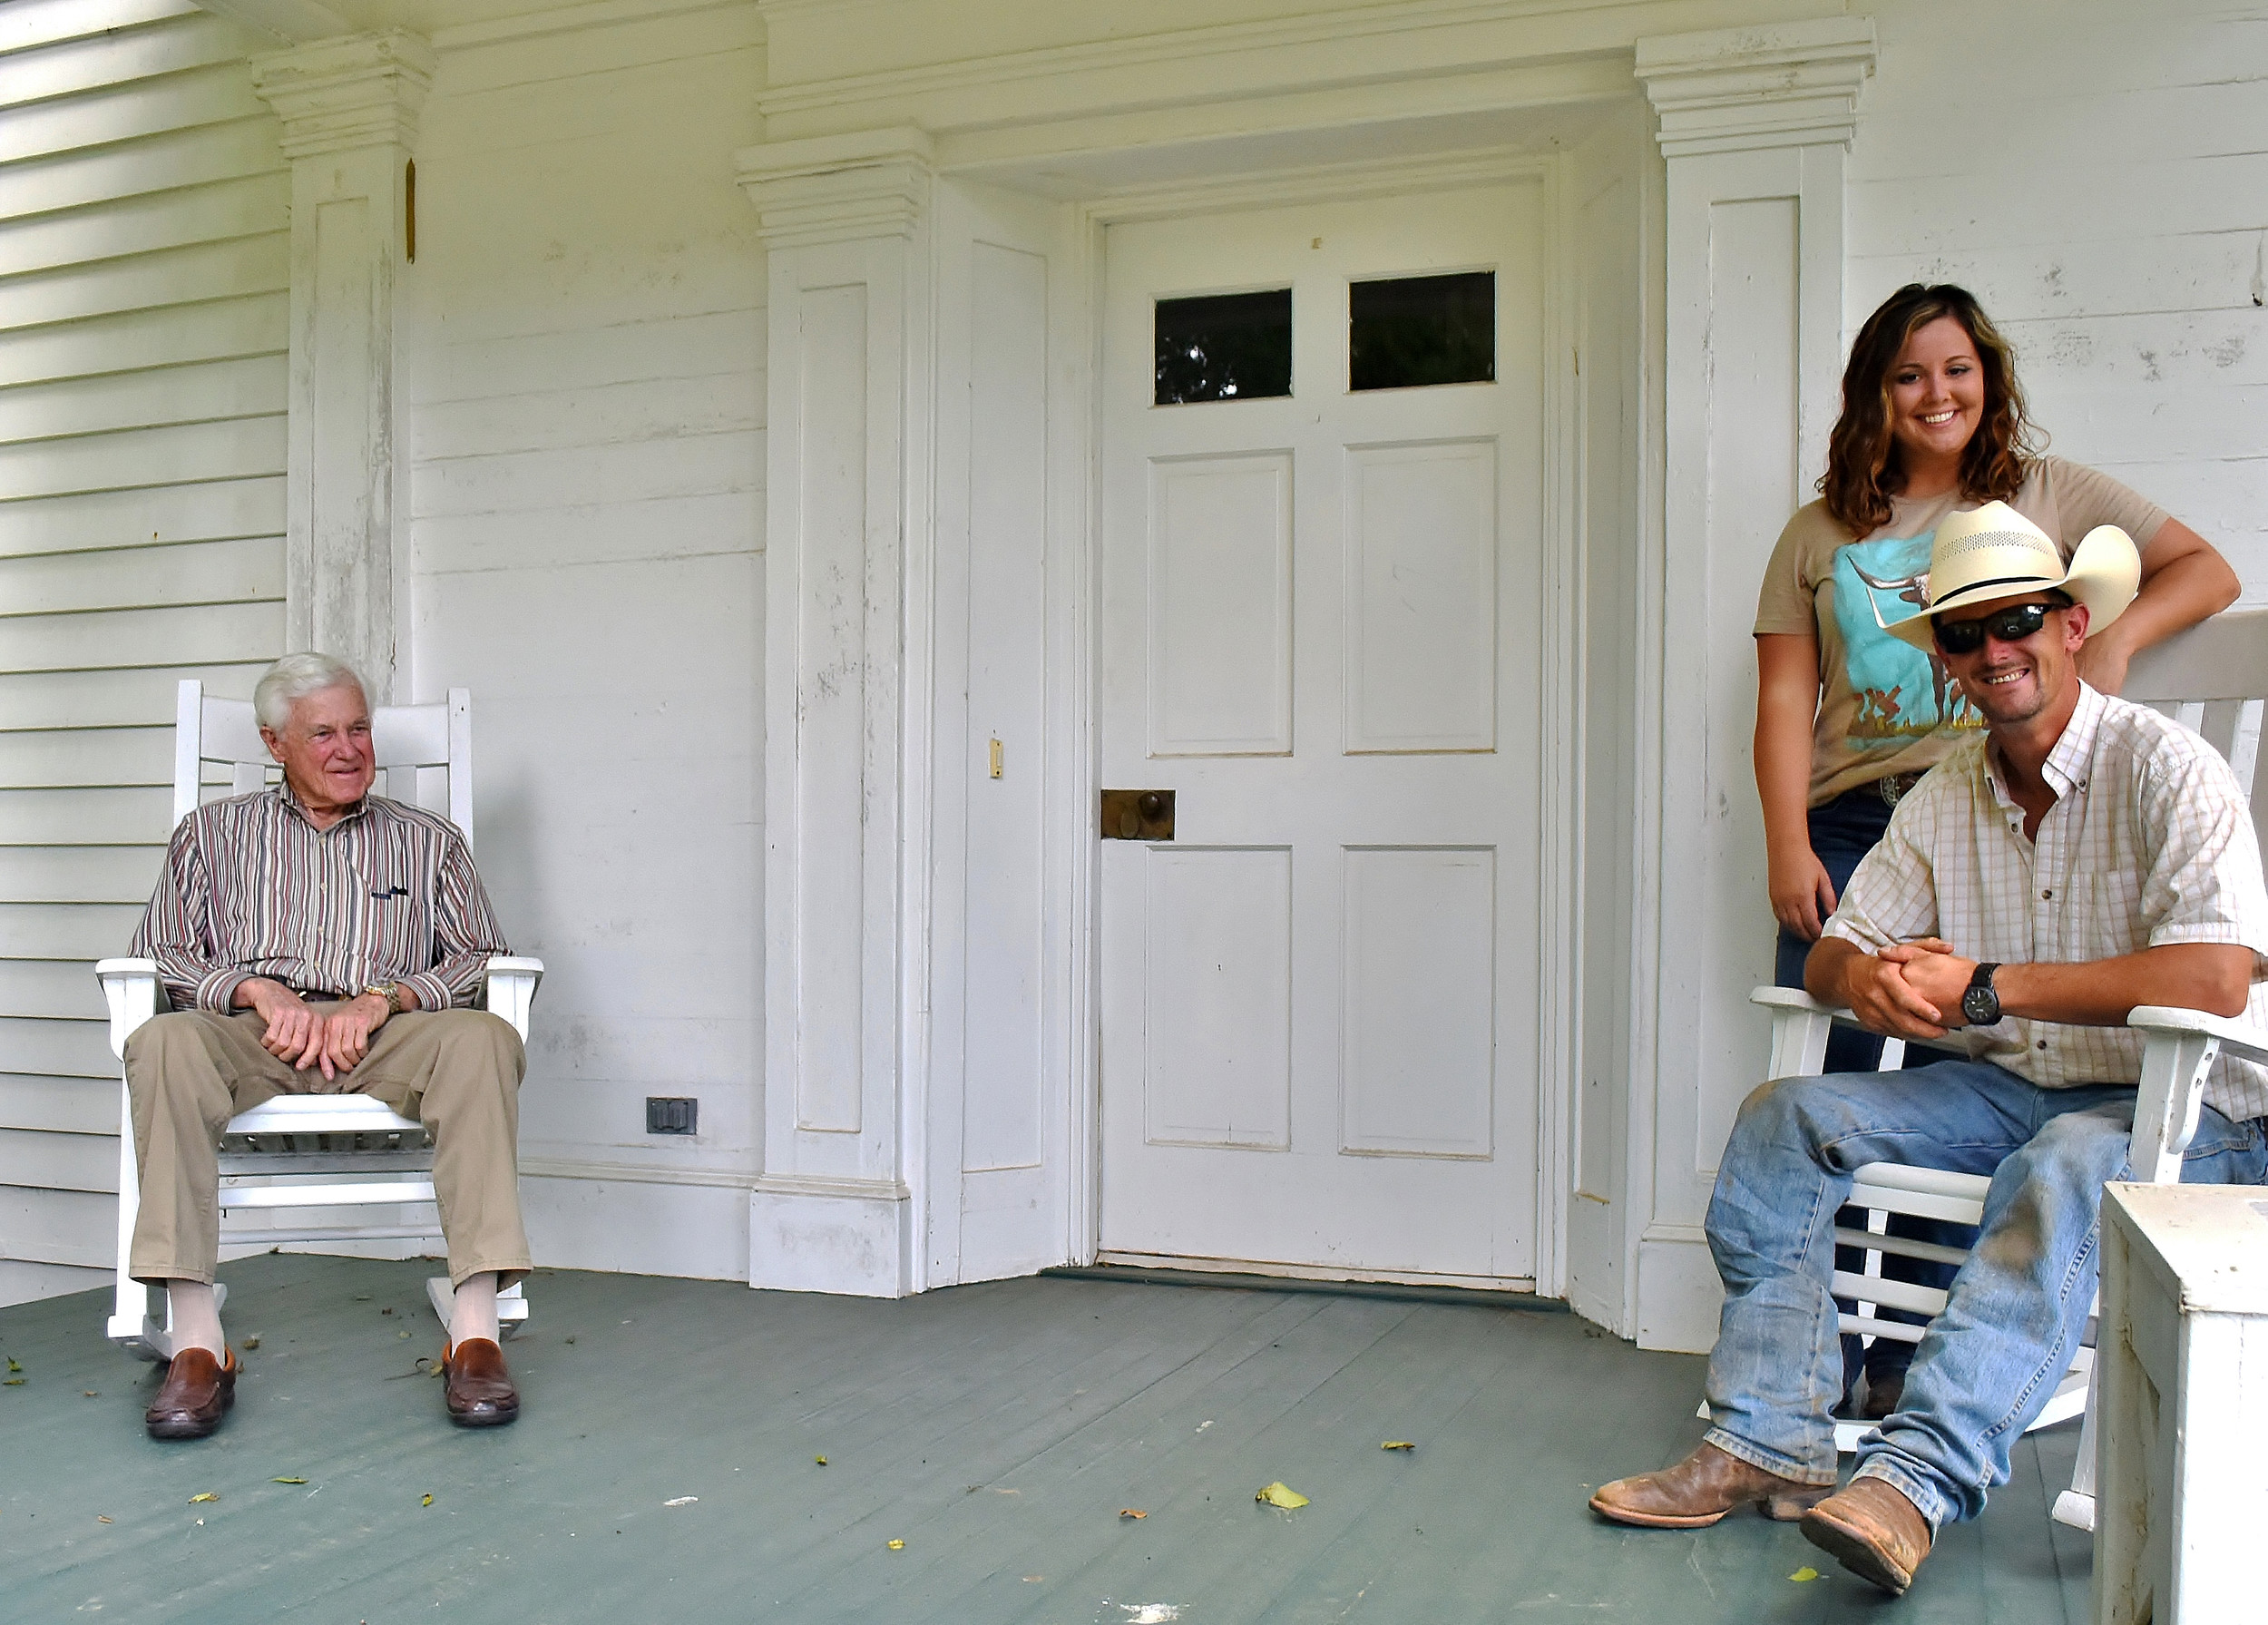 Mack Watkins, left, relaxes on his front porch with his son Jonathan and daughter-in-law, Jessica.